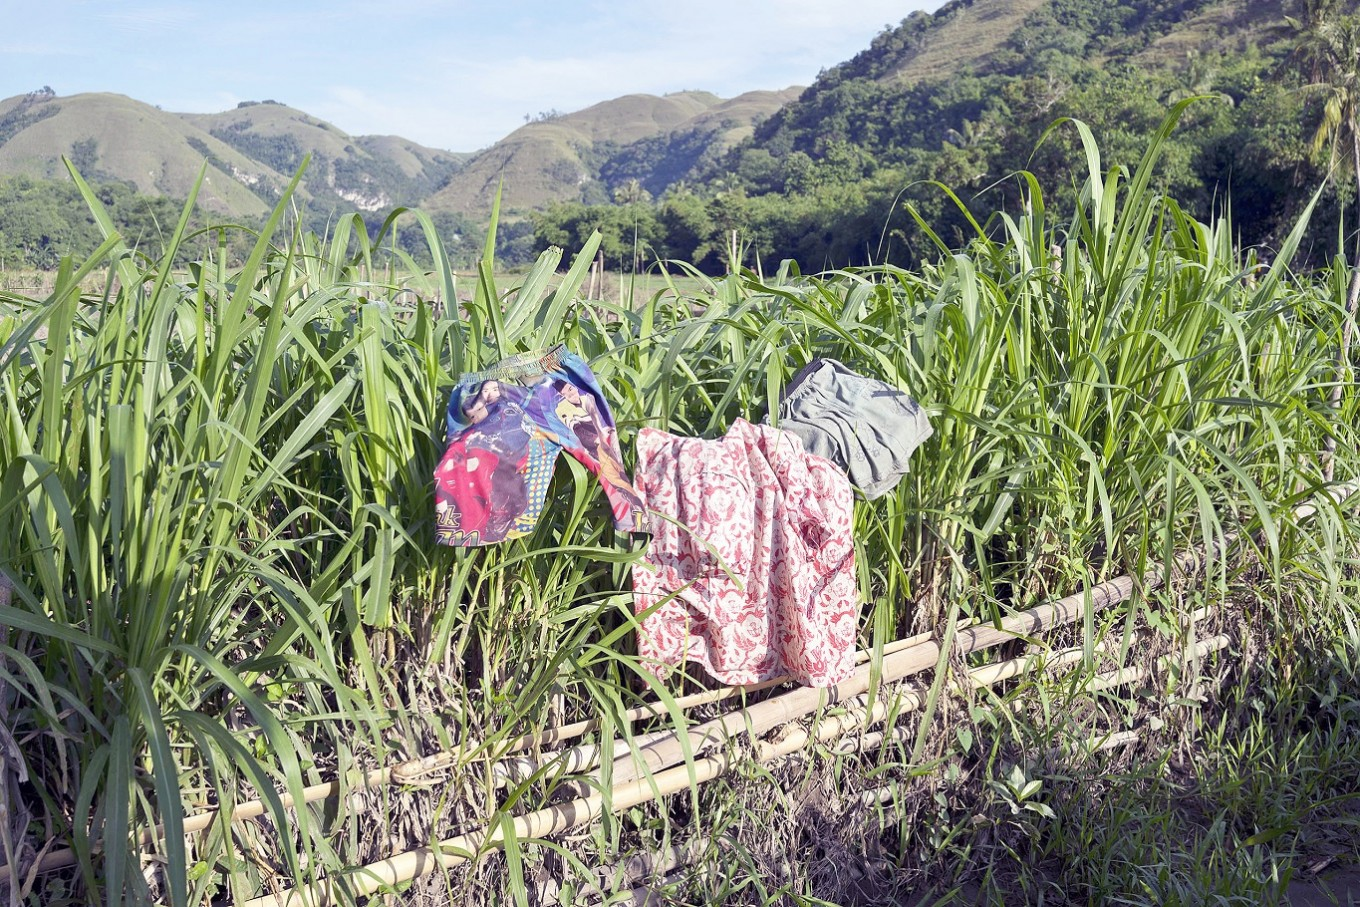 Out to dry: Damp clothes worn by the children are dried under the sun.